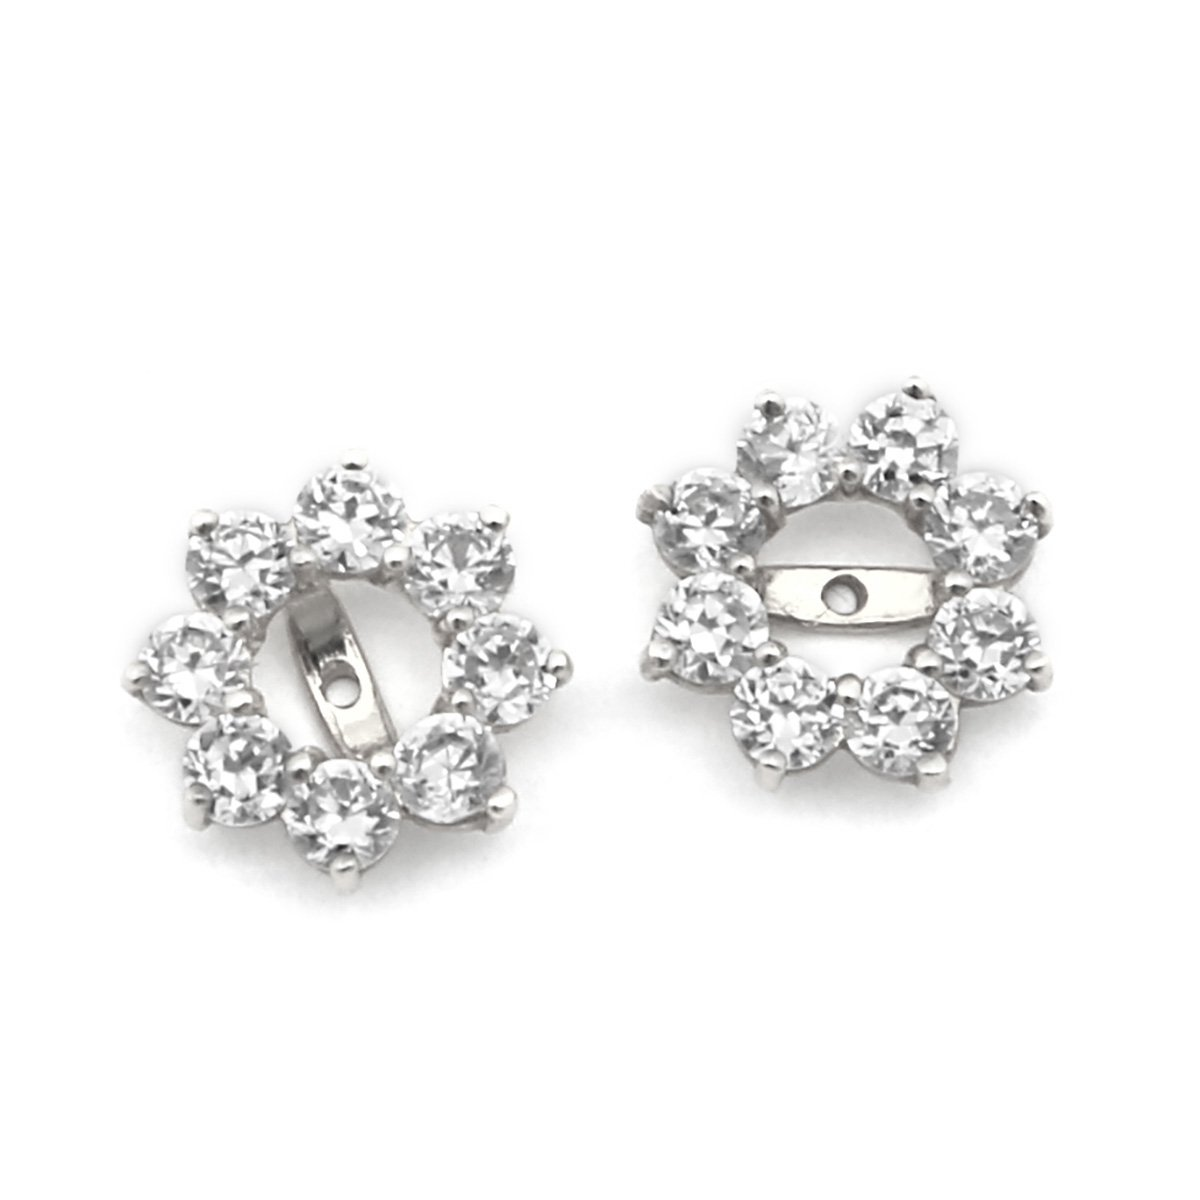 14k White Gold 10mm Cubic Zirconia Halo Earring Jackets